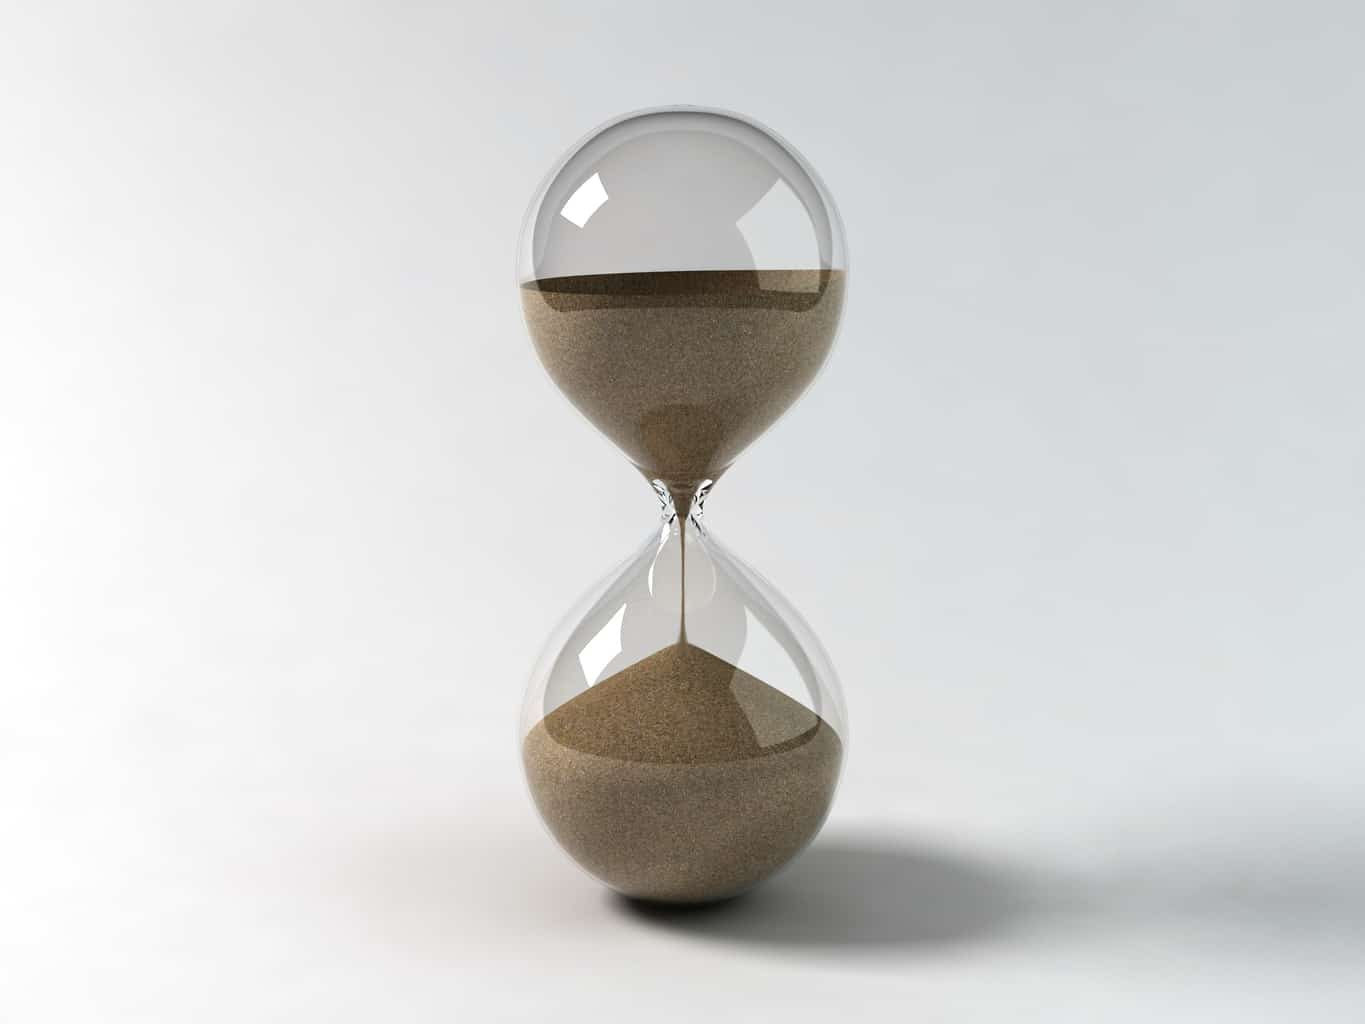 Time: